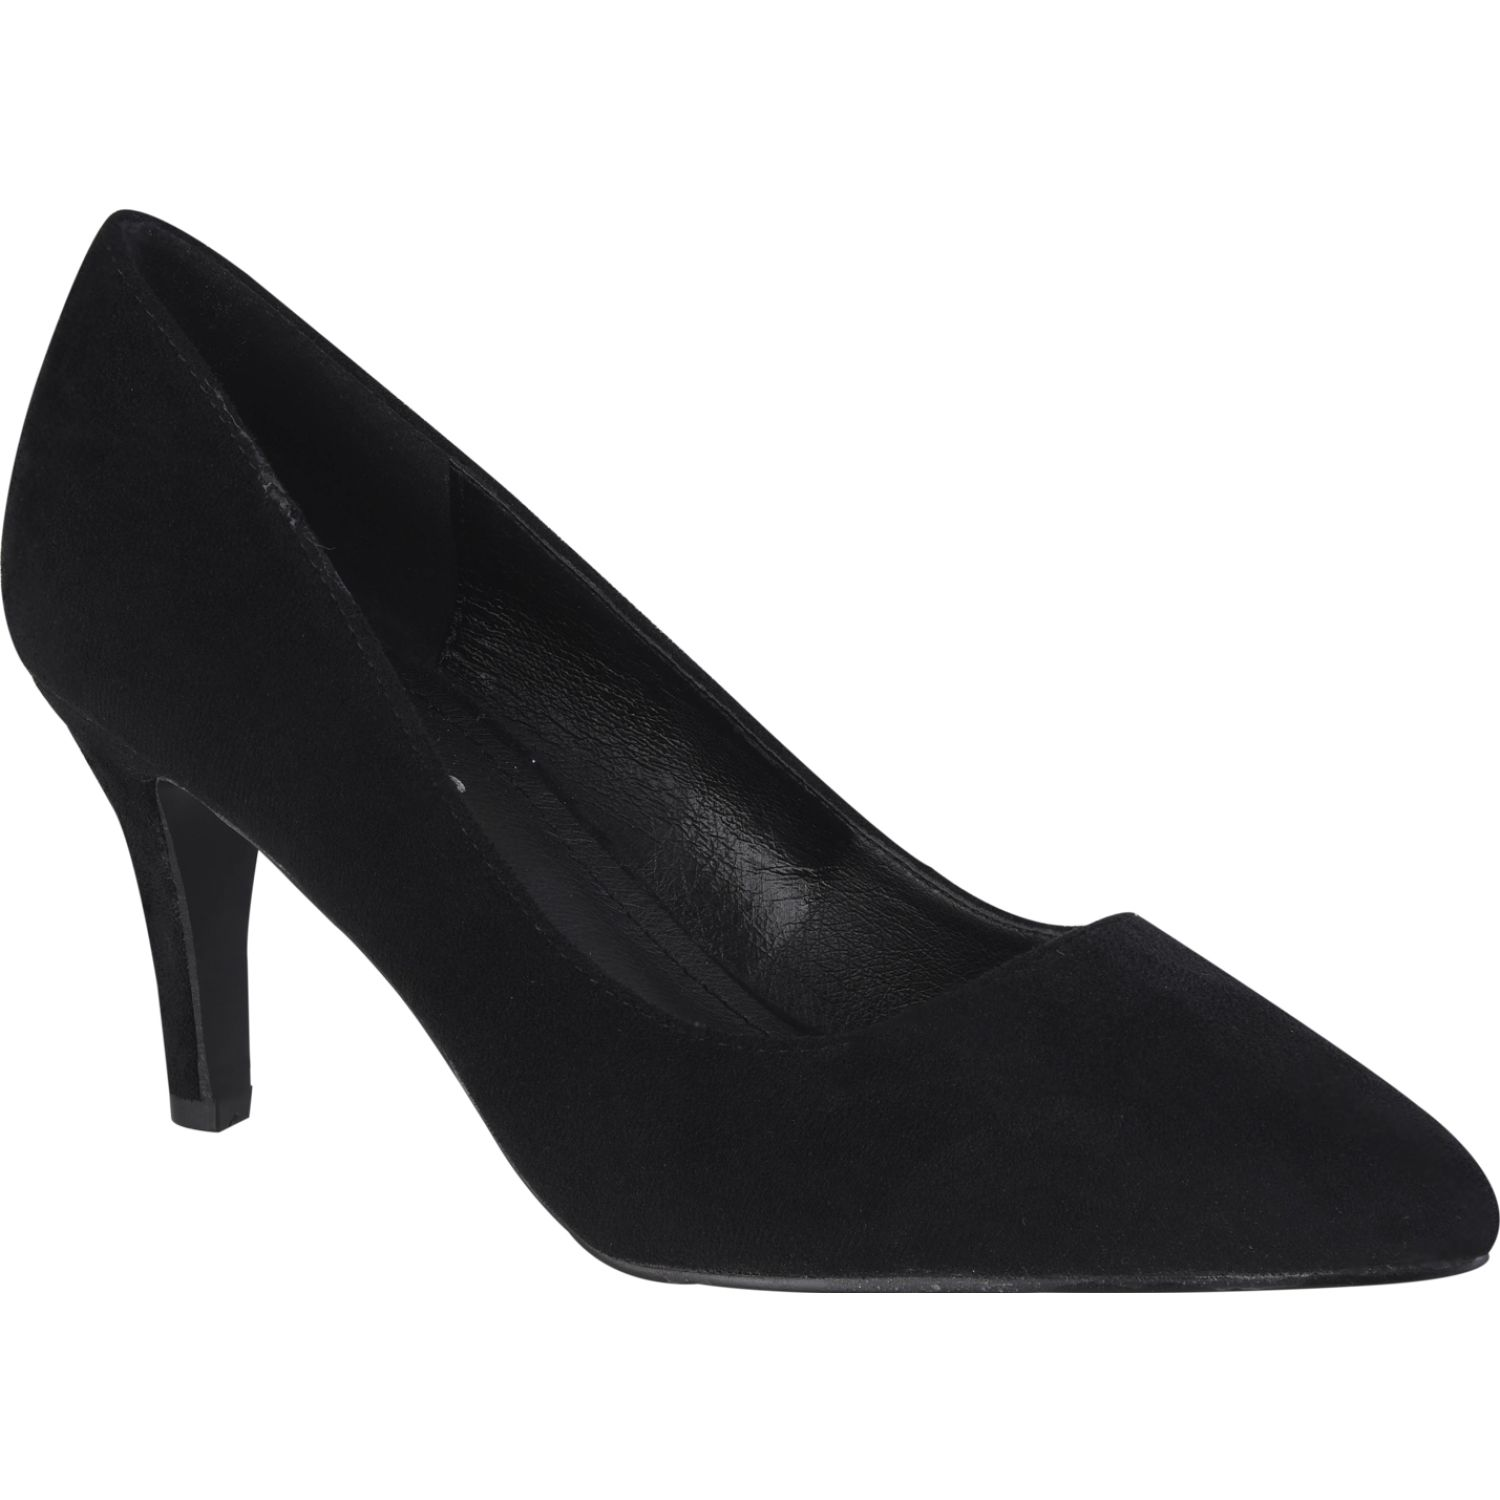 Platanitos cv 0099 Negro Estiletos y Pumps